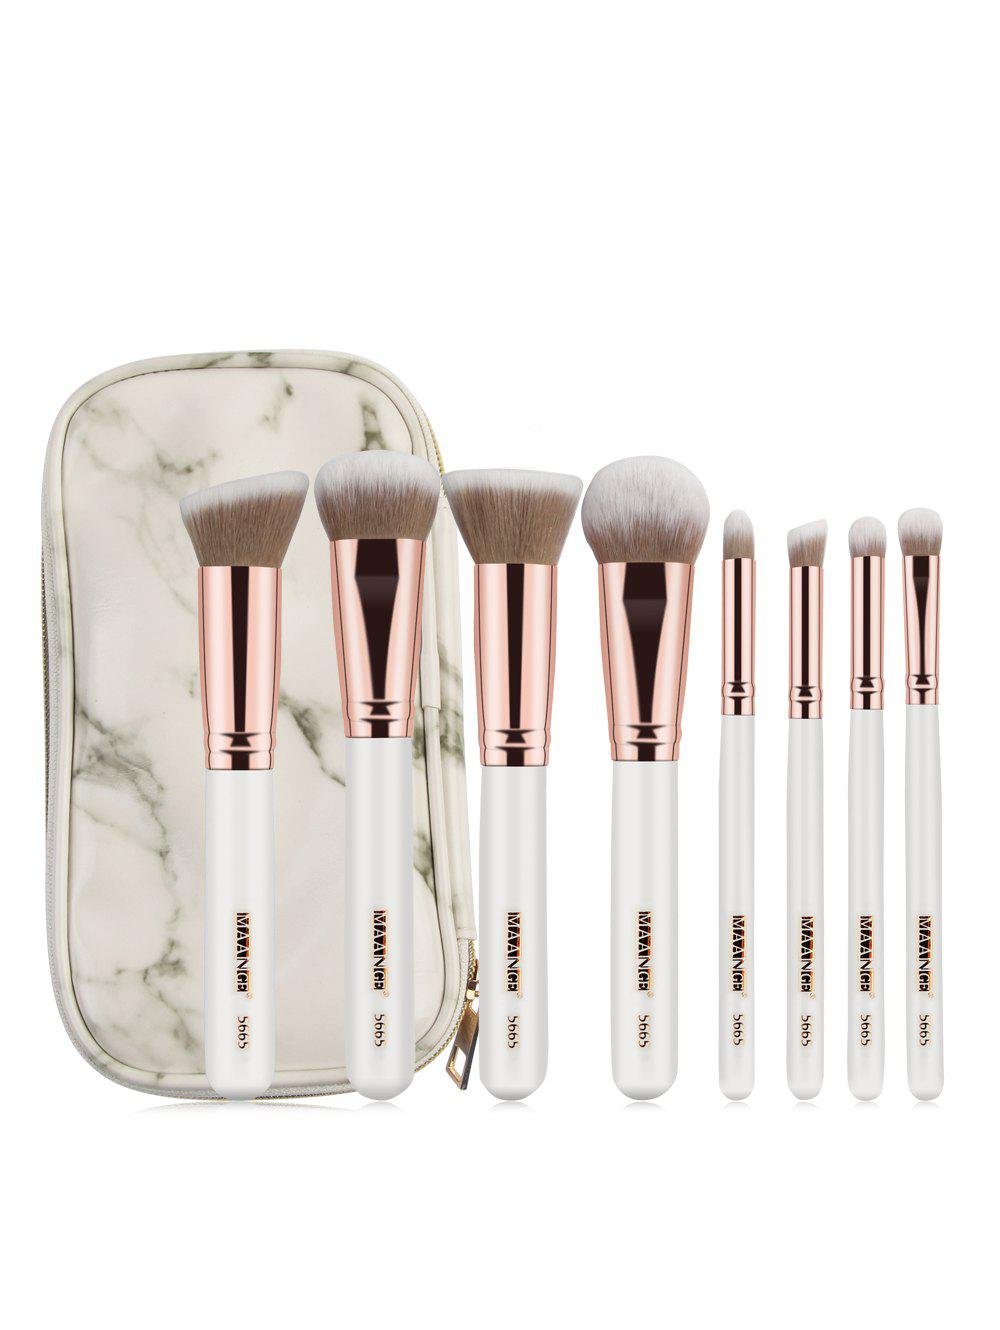 Buy 8 Pcs Wooden Handle Soft Hair Makeup Brush Set with Marble Brush Bag